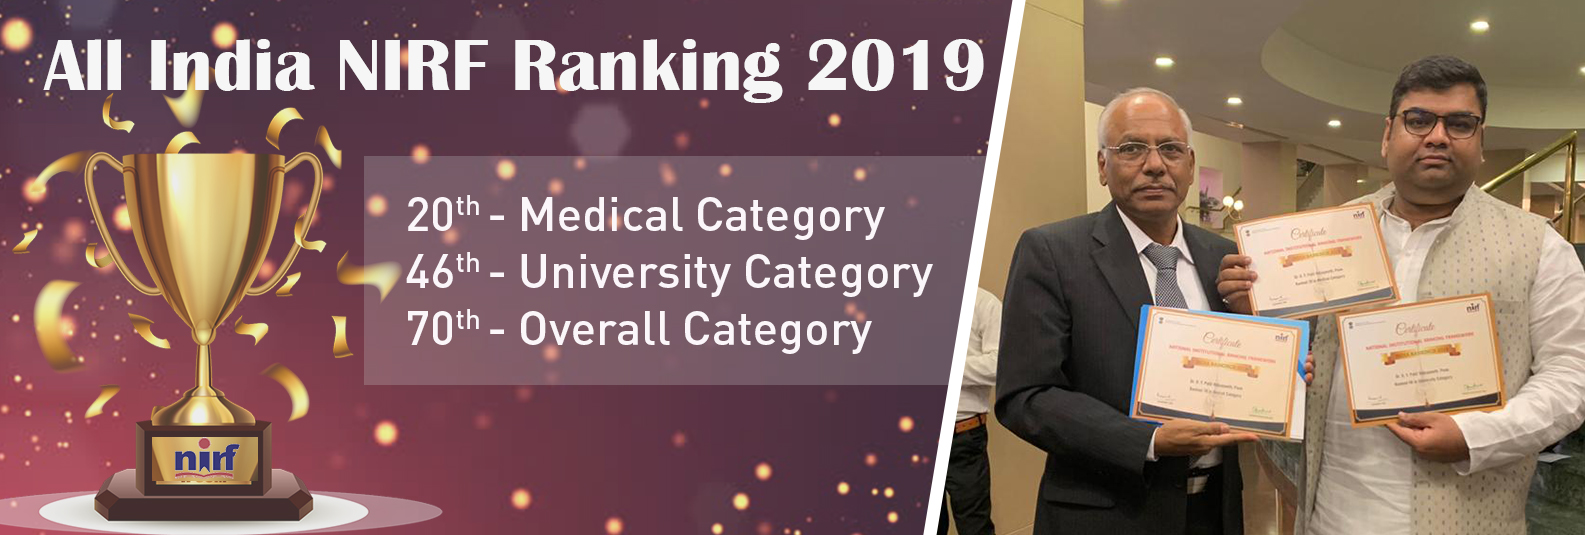 Rank 20th in Medical Catagery, 46th in University Category, 70th in overall category